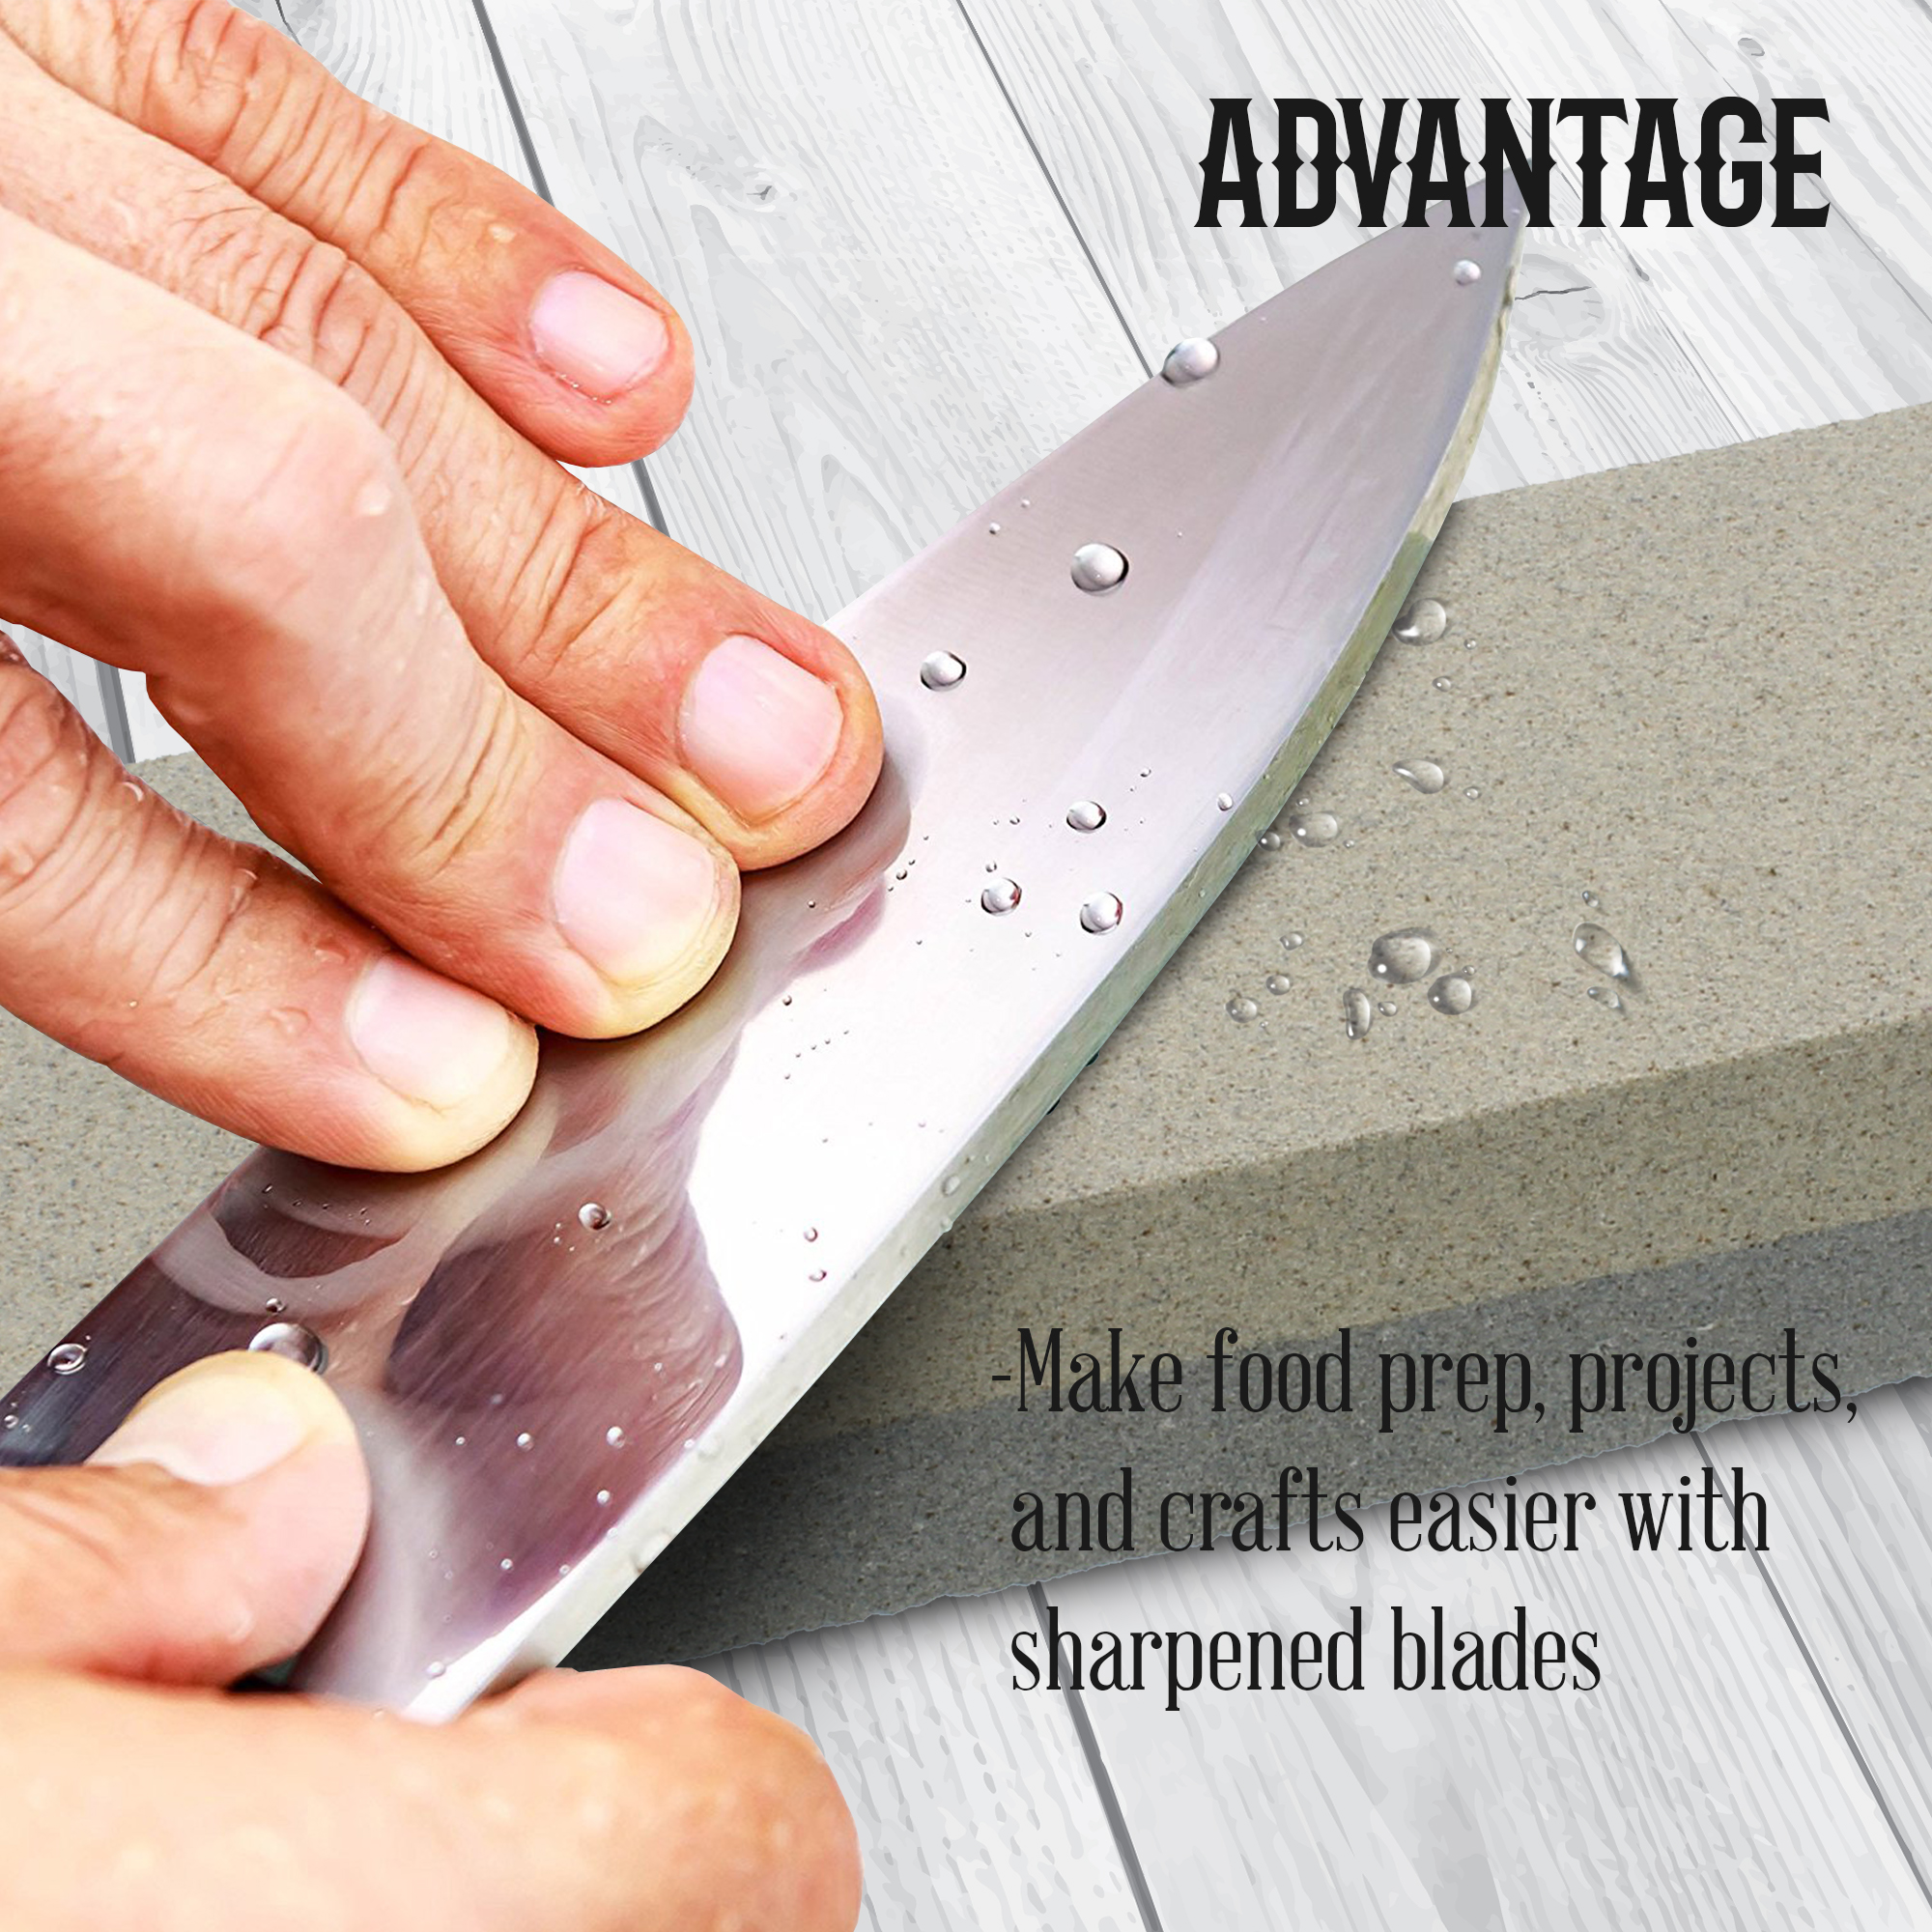 Knife-Straight-Blade-Manual-Sharpener-Tool-Dual-Grit-Sharpening-Stone thumbnail 12